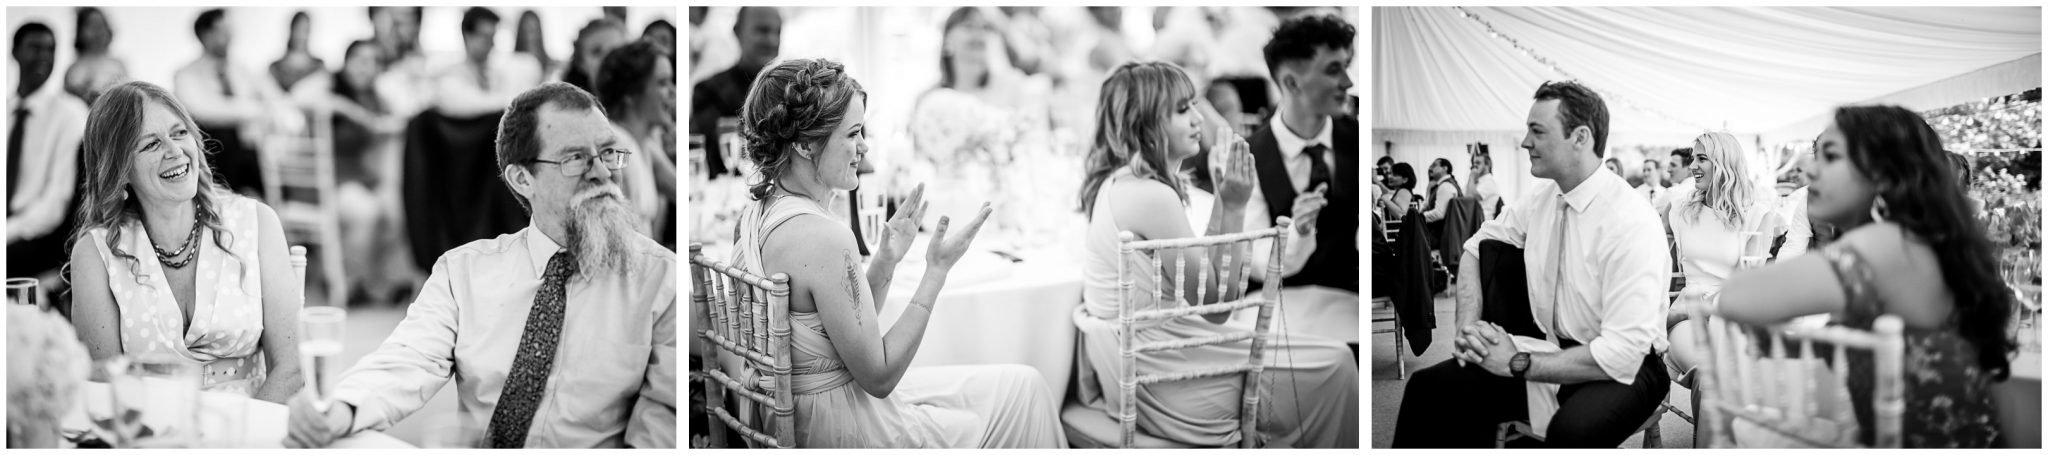 Black and white candid photos of guests watching the speeches